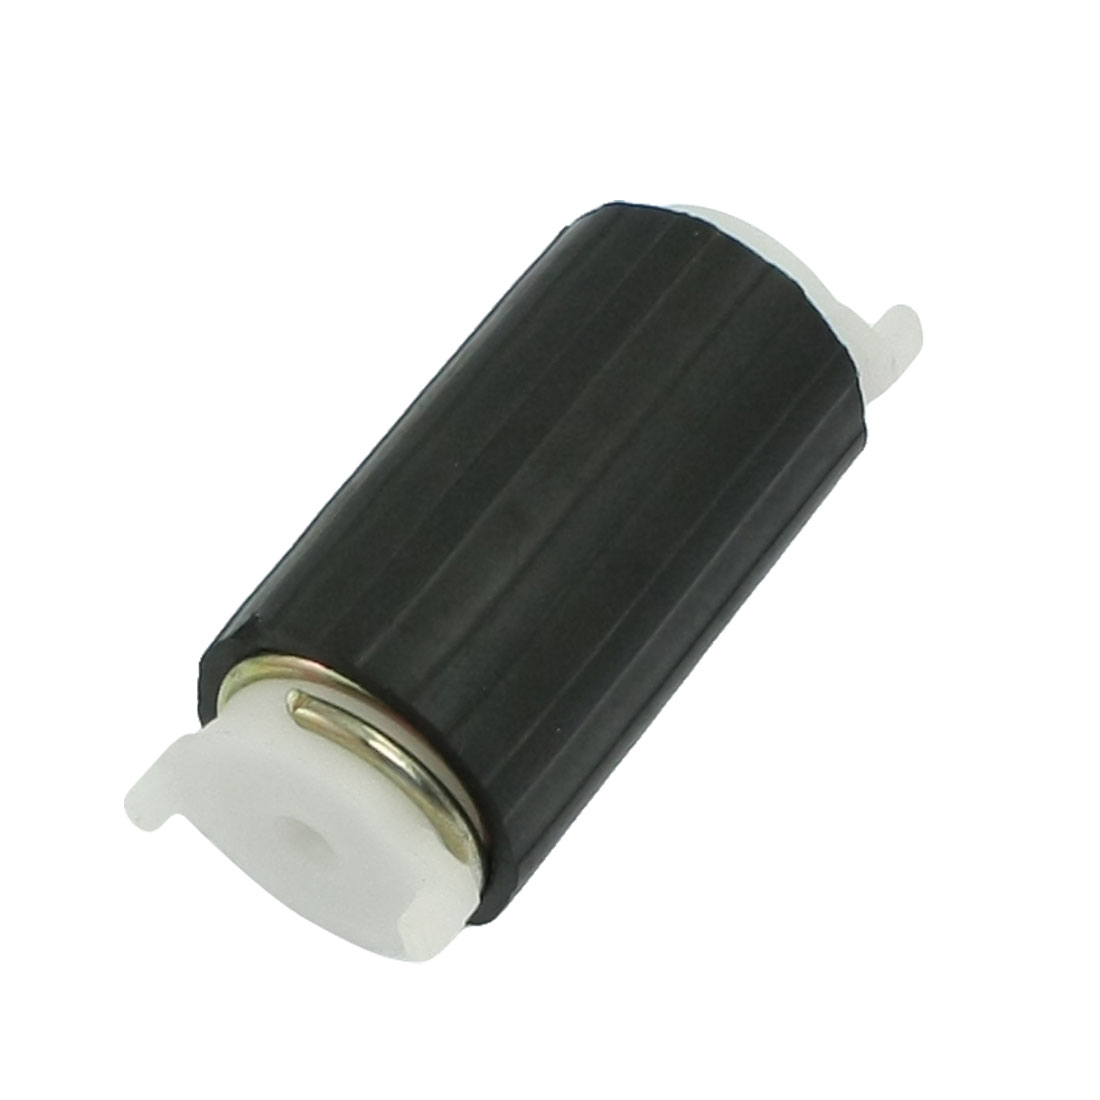 Spring Loaded Rubber Shell Shock Absorber for Washing Machine Washer